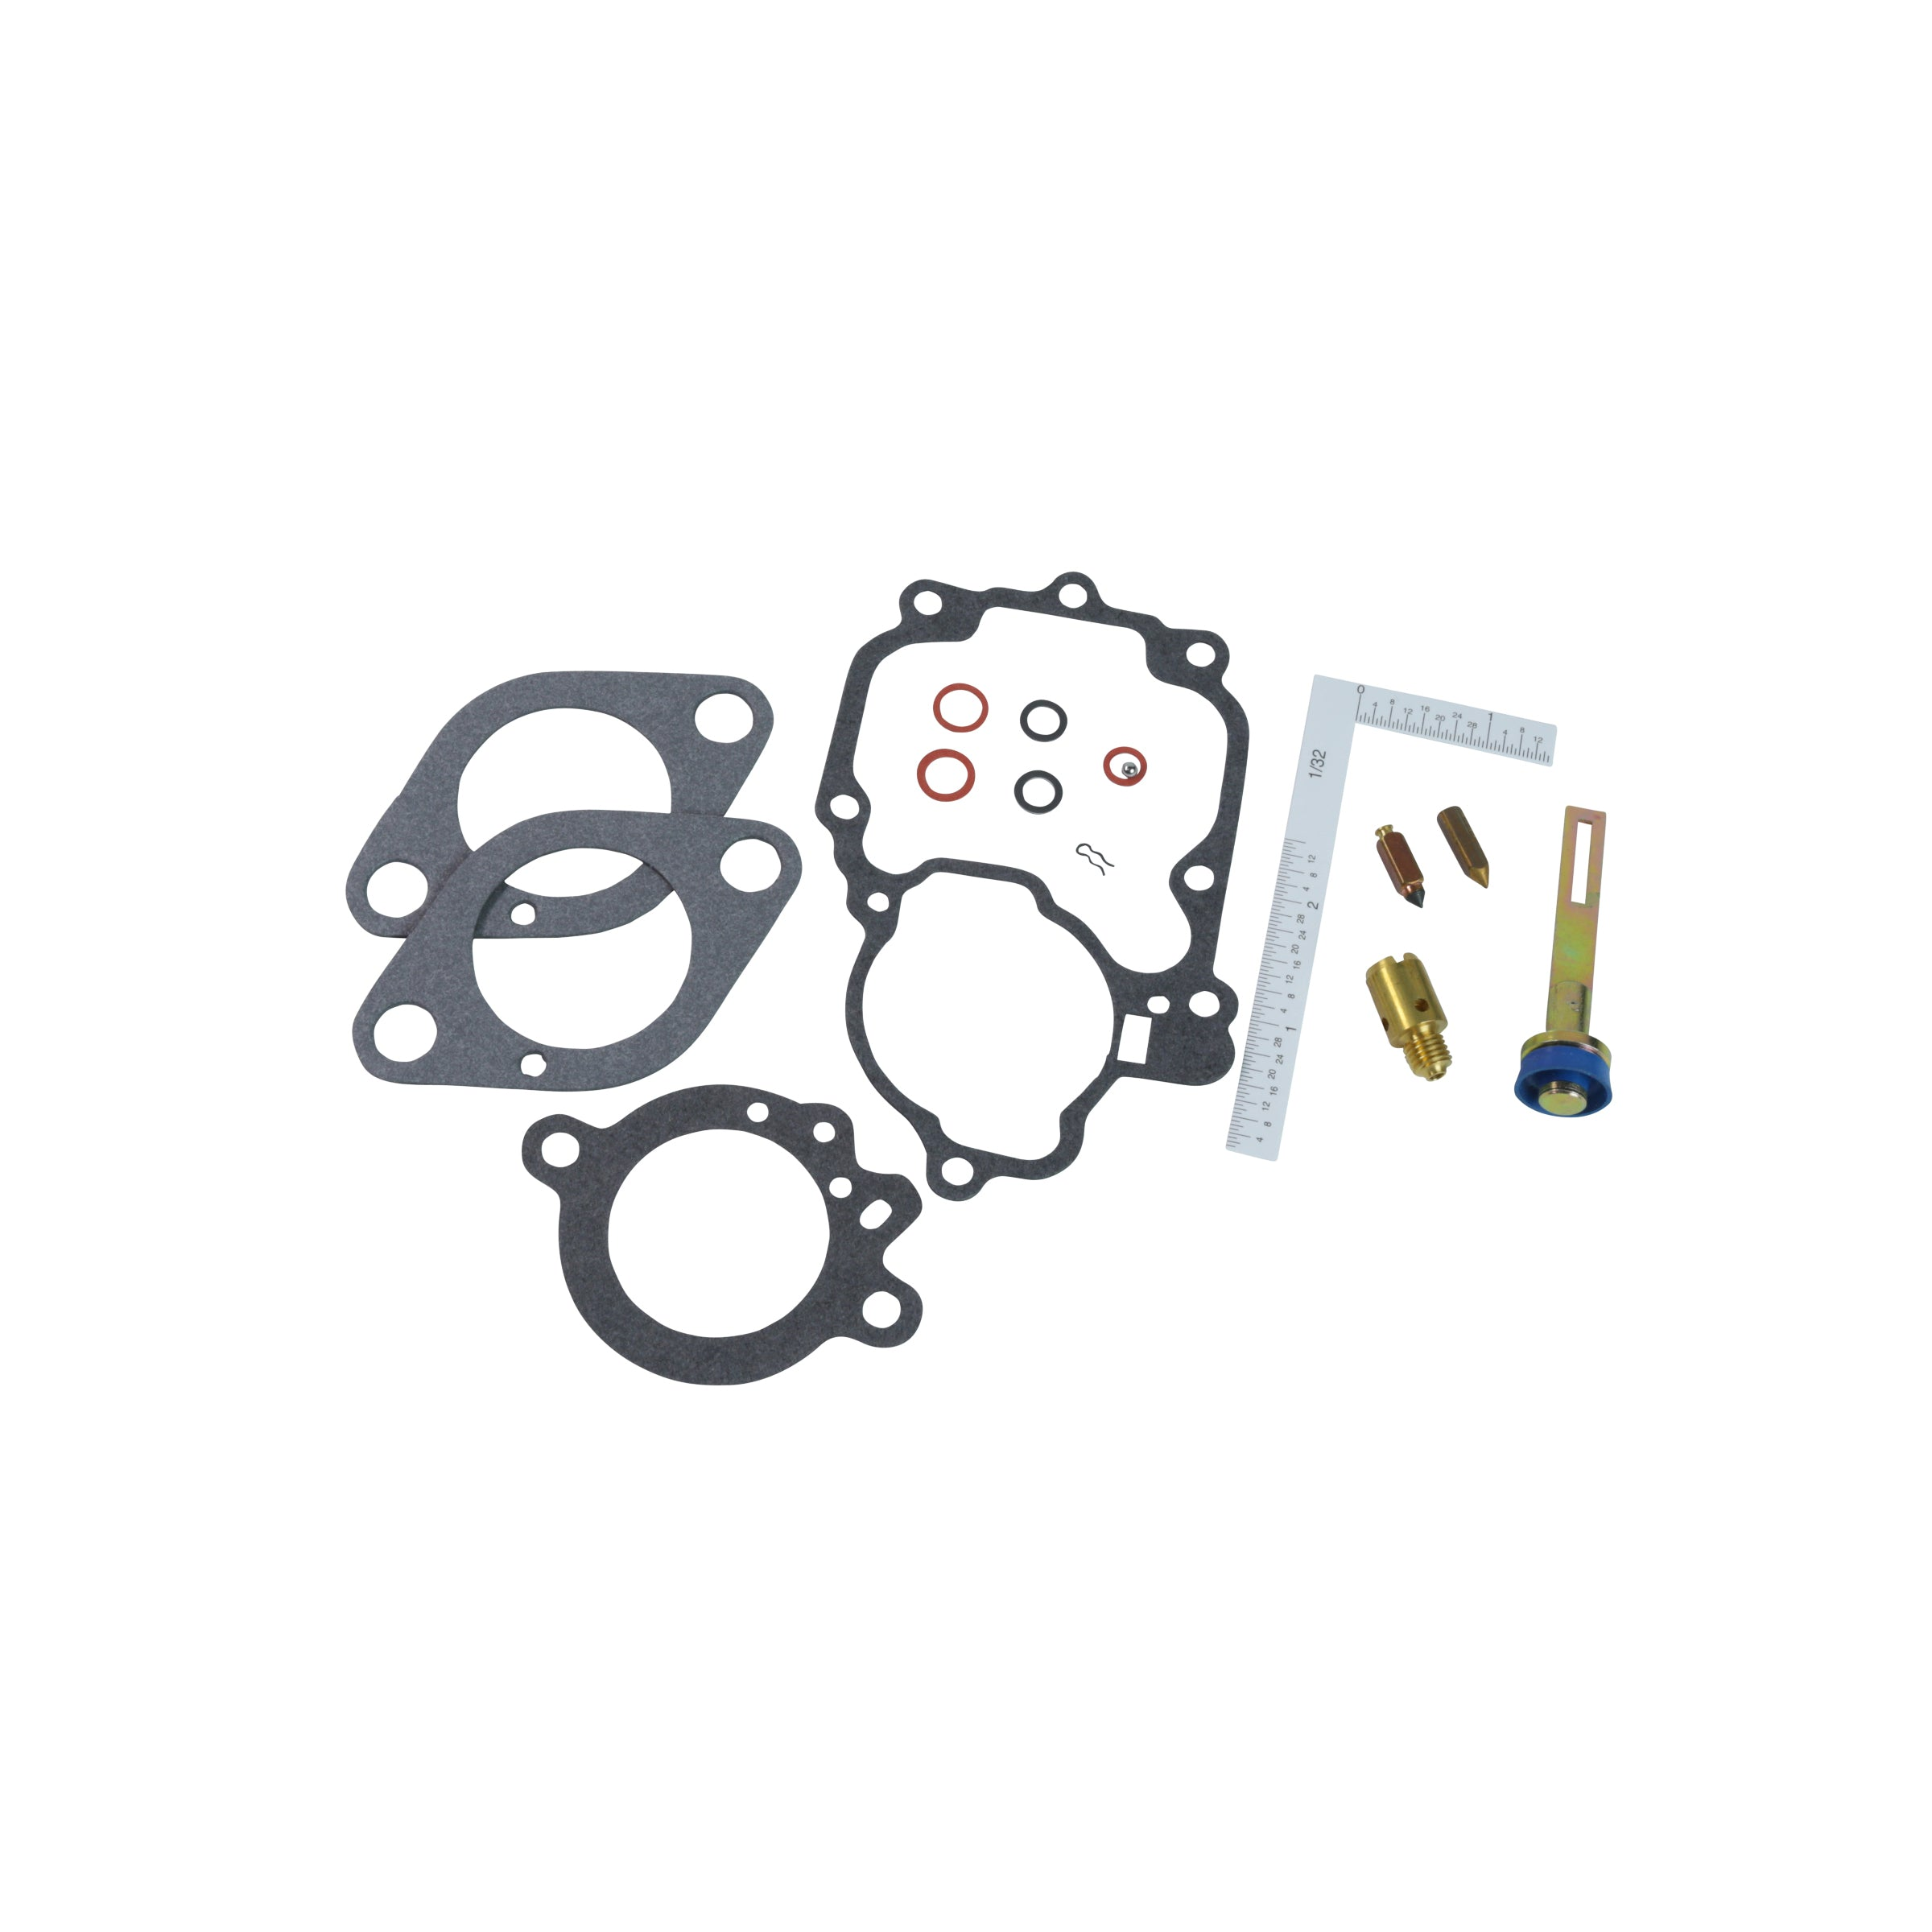 Holley Carburetor Rebuildl Kit • 1941-51 6 Cylinder